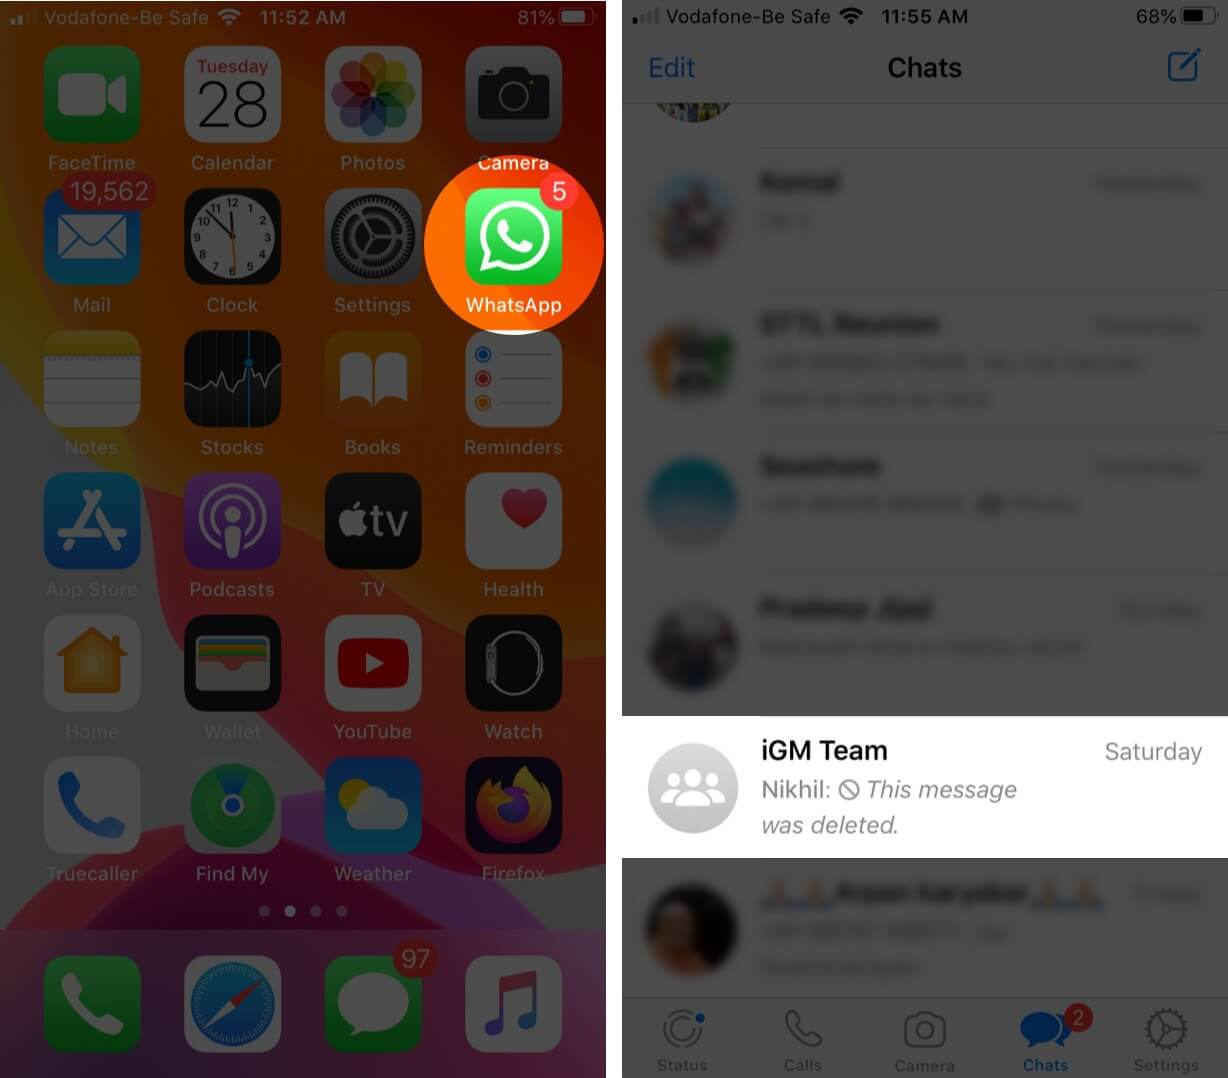 open whatsapp and tap on conversation on iphone